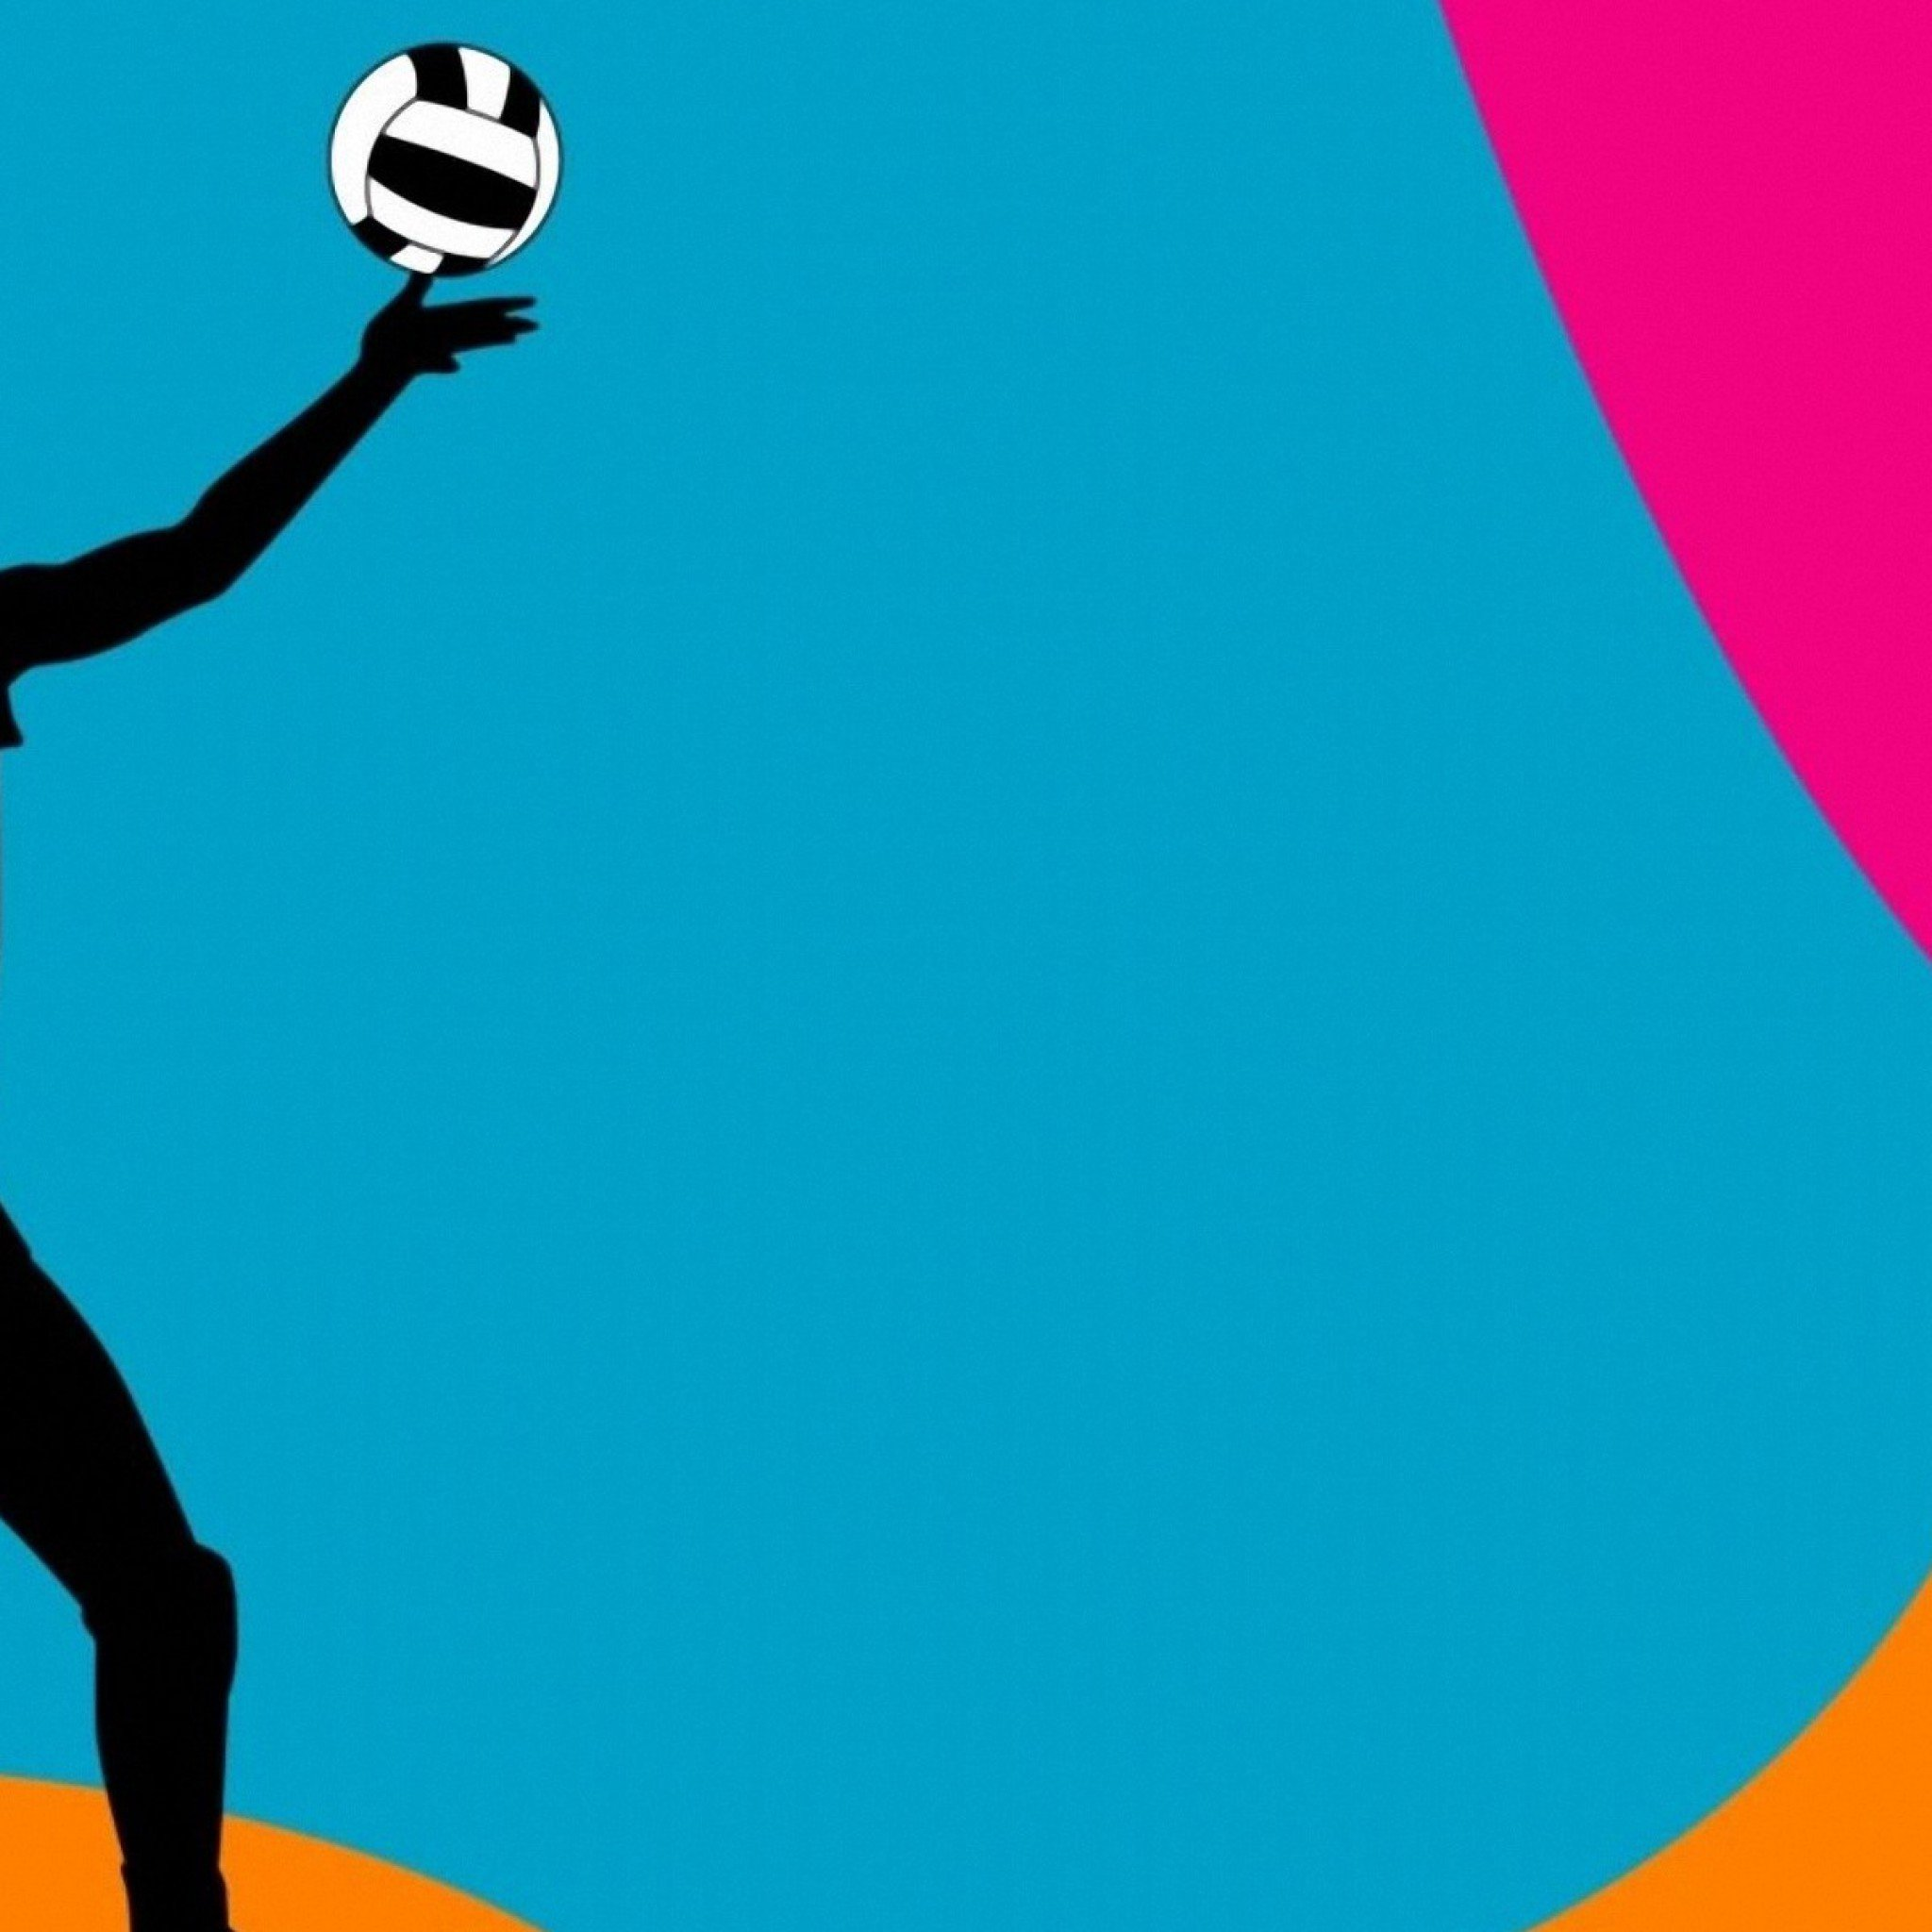 Free volleyball wallpapers and backgrounds wallpapersafari colorful volleyball ball backgrounds colorful volleyball background 2048x2048 toneelgroepblik Image collections